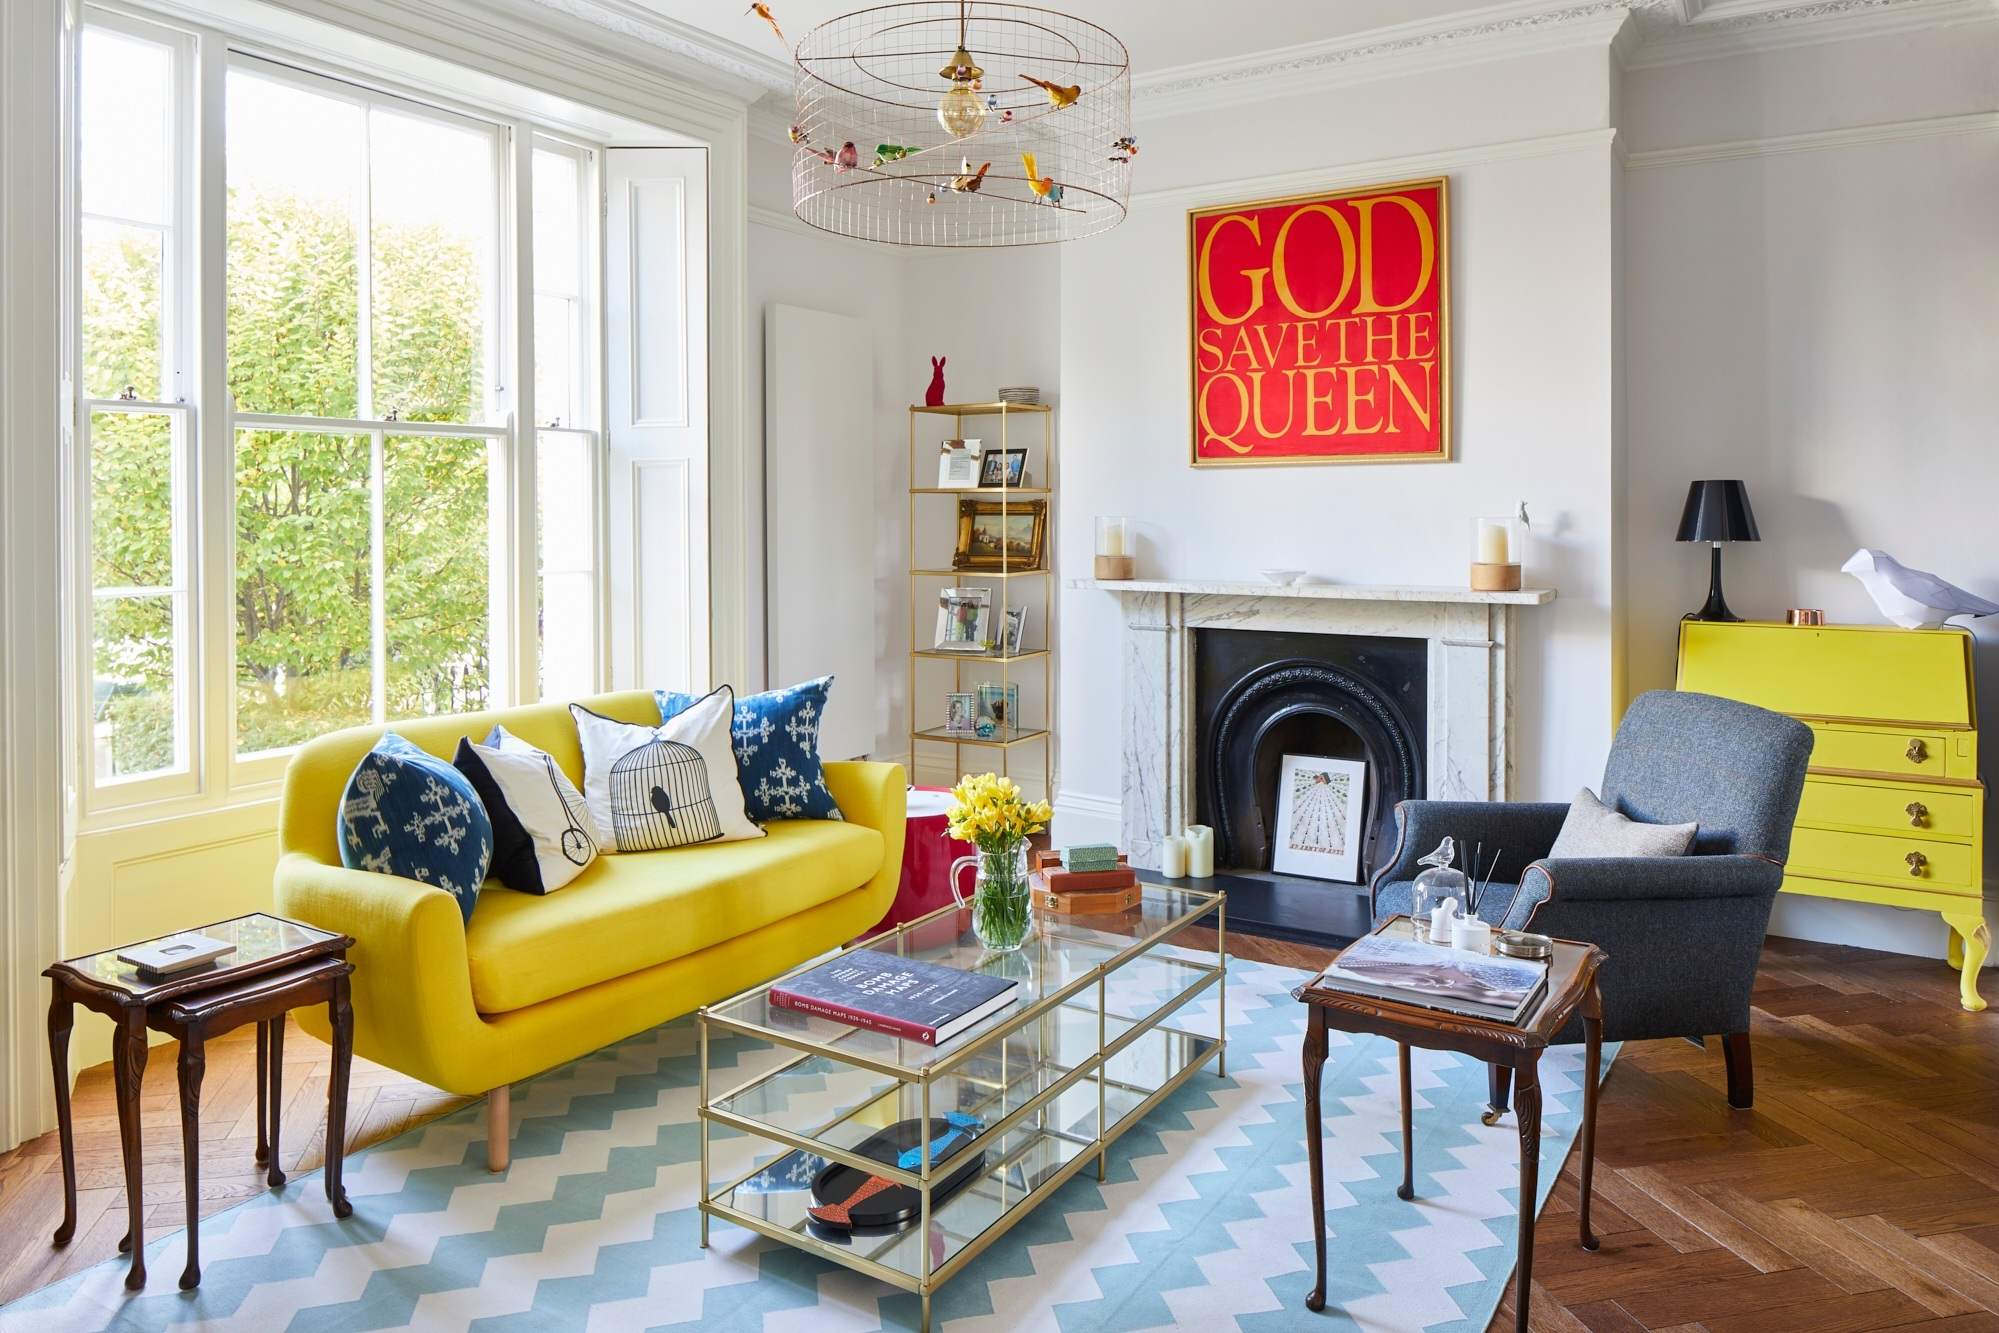 Eclectic interior design in London town house